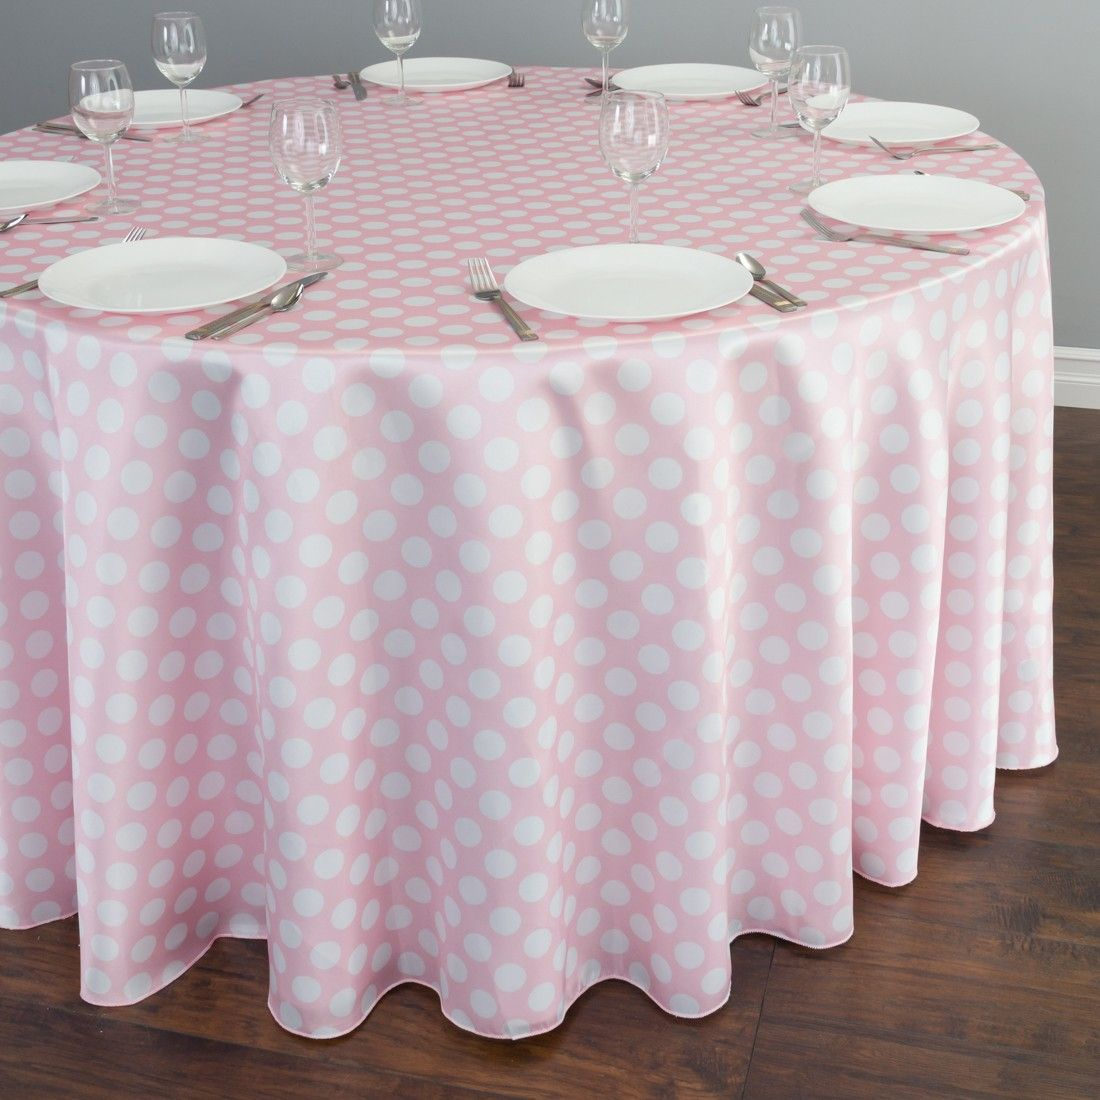 Round Polka Dot Satin Tablecloth Pink / White For Birthday Parties, Showers